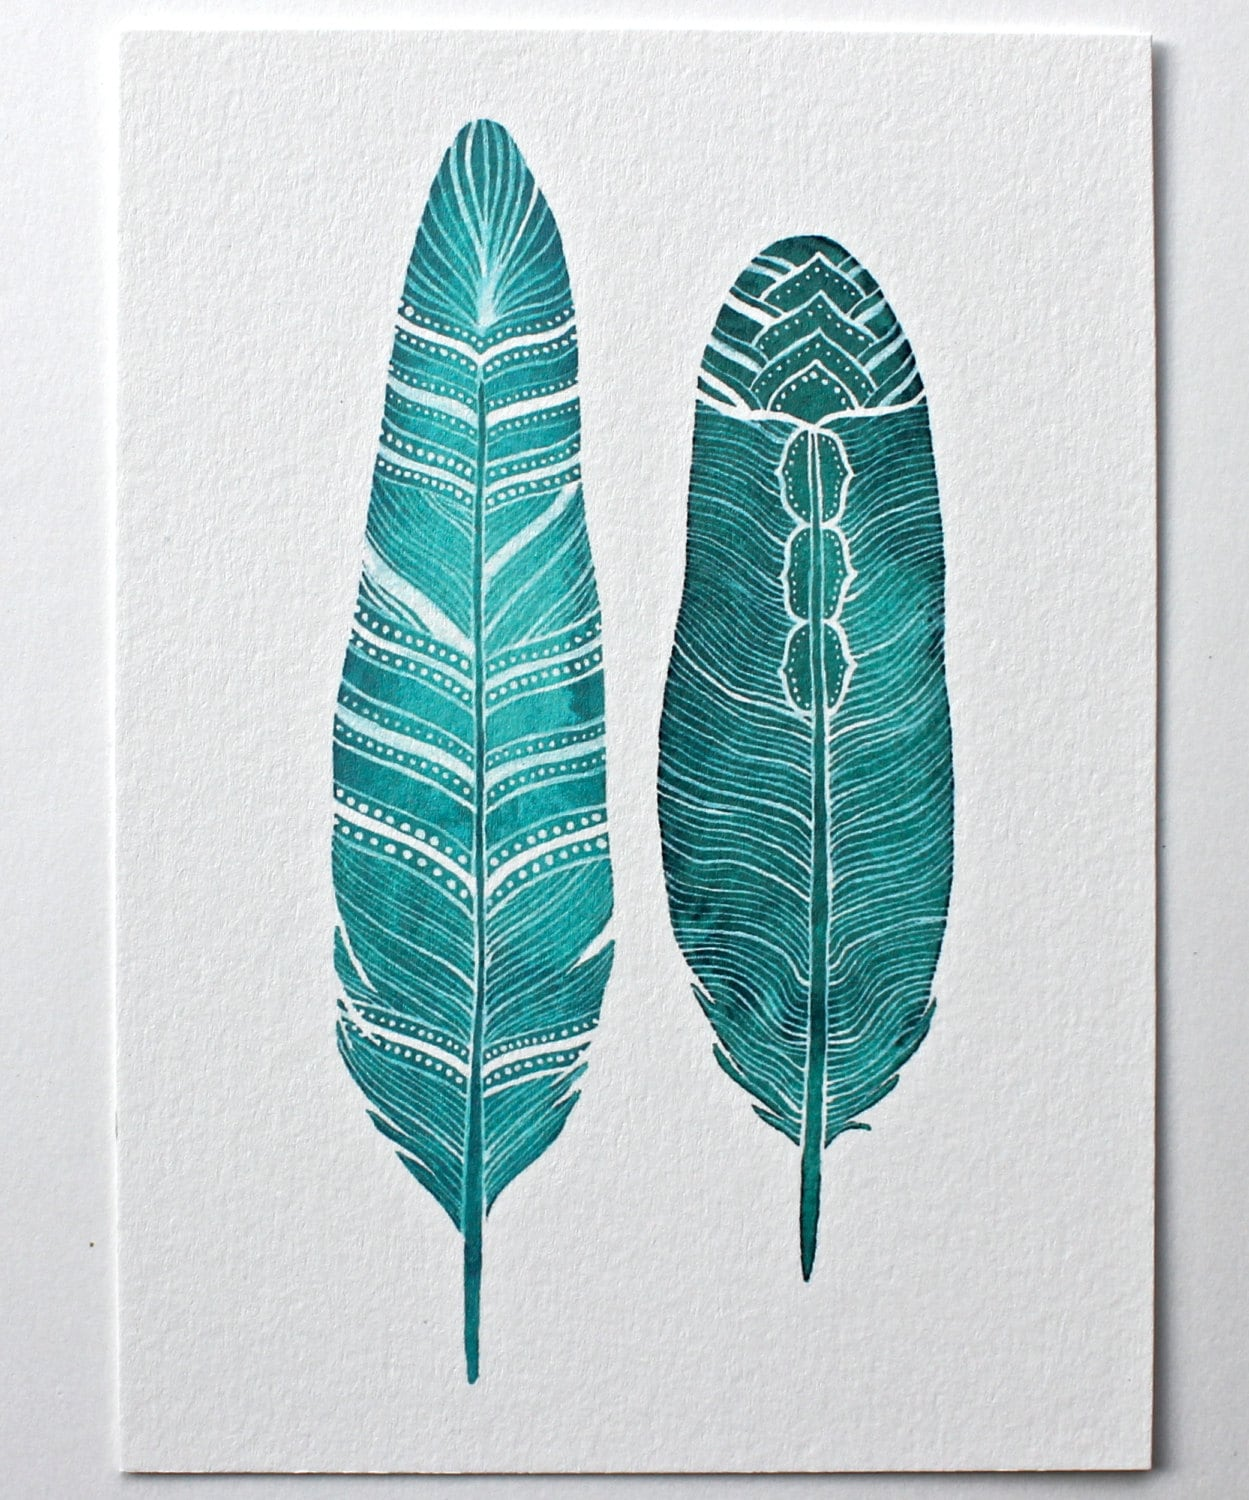 Feather Watercolor Art Painting - Archival Print - 8x10 River Song Feathers - RiverLuna